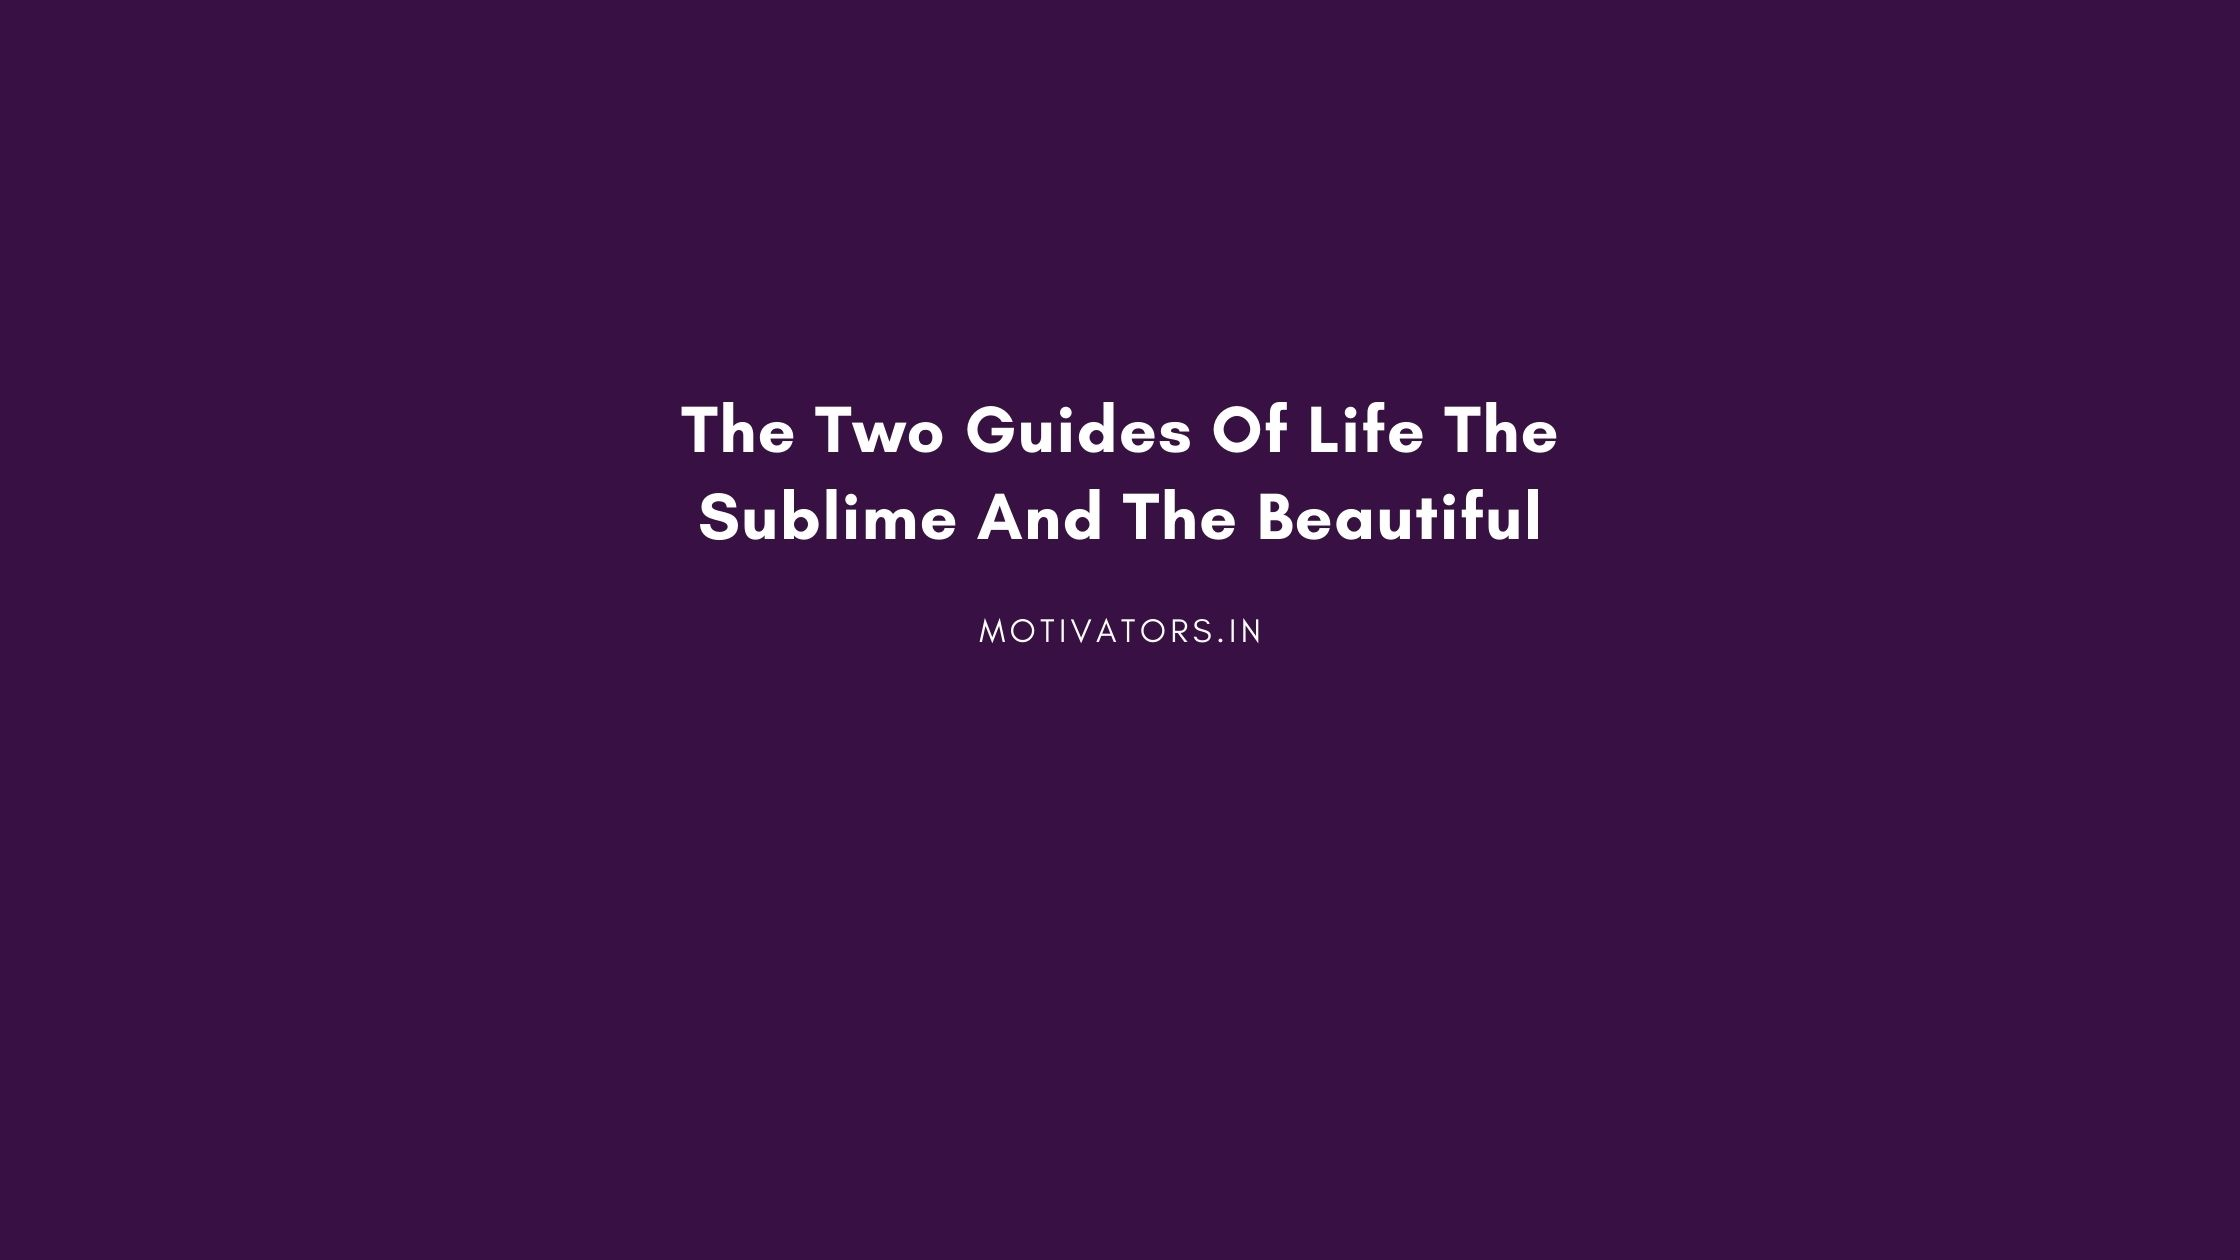 The Two Guides Of Life The Sublime And The Beautiful